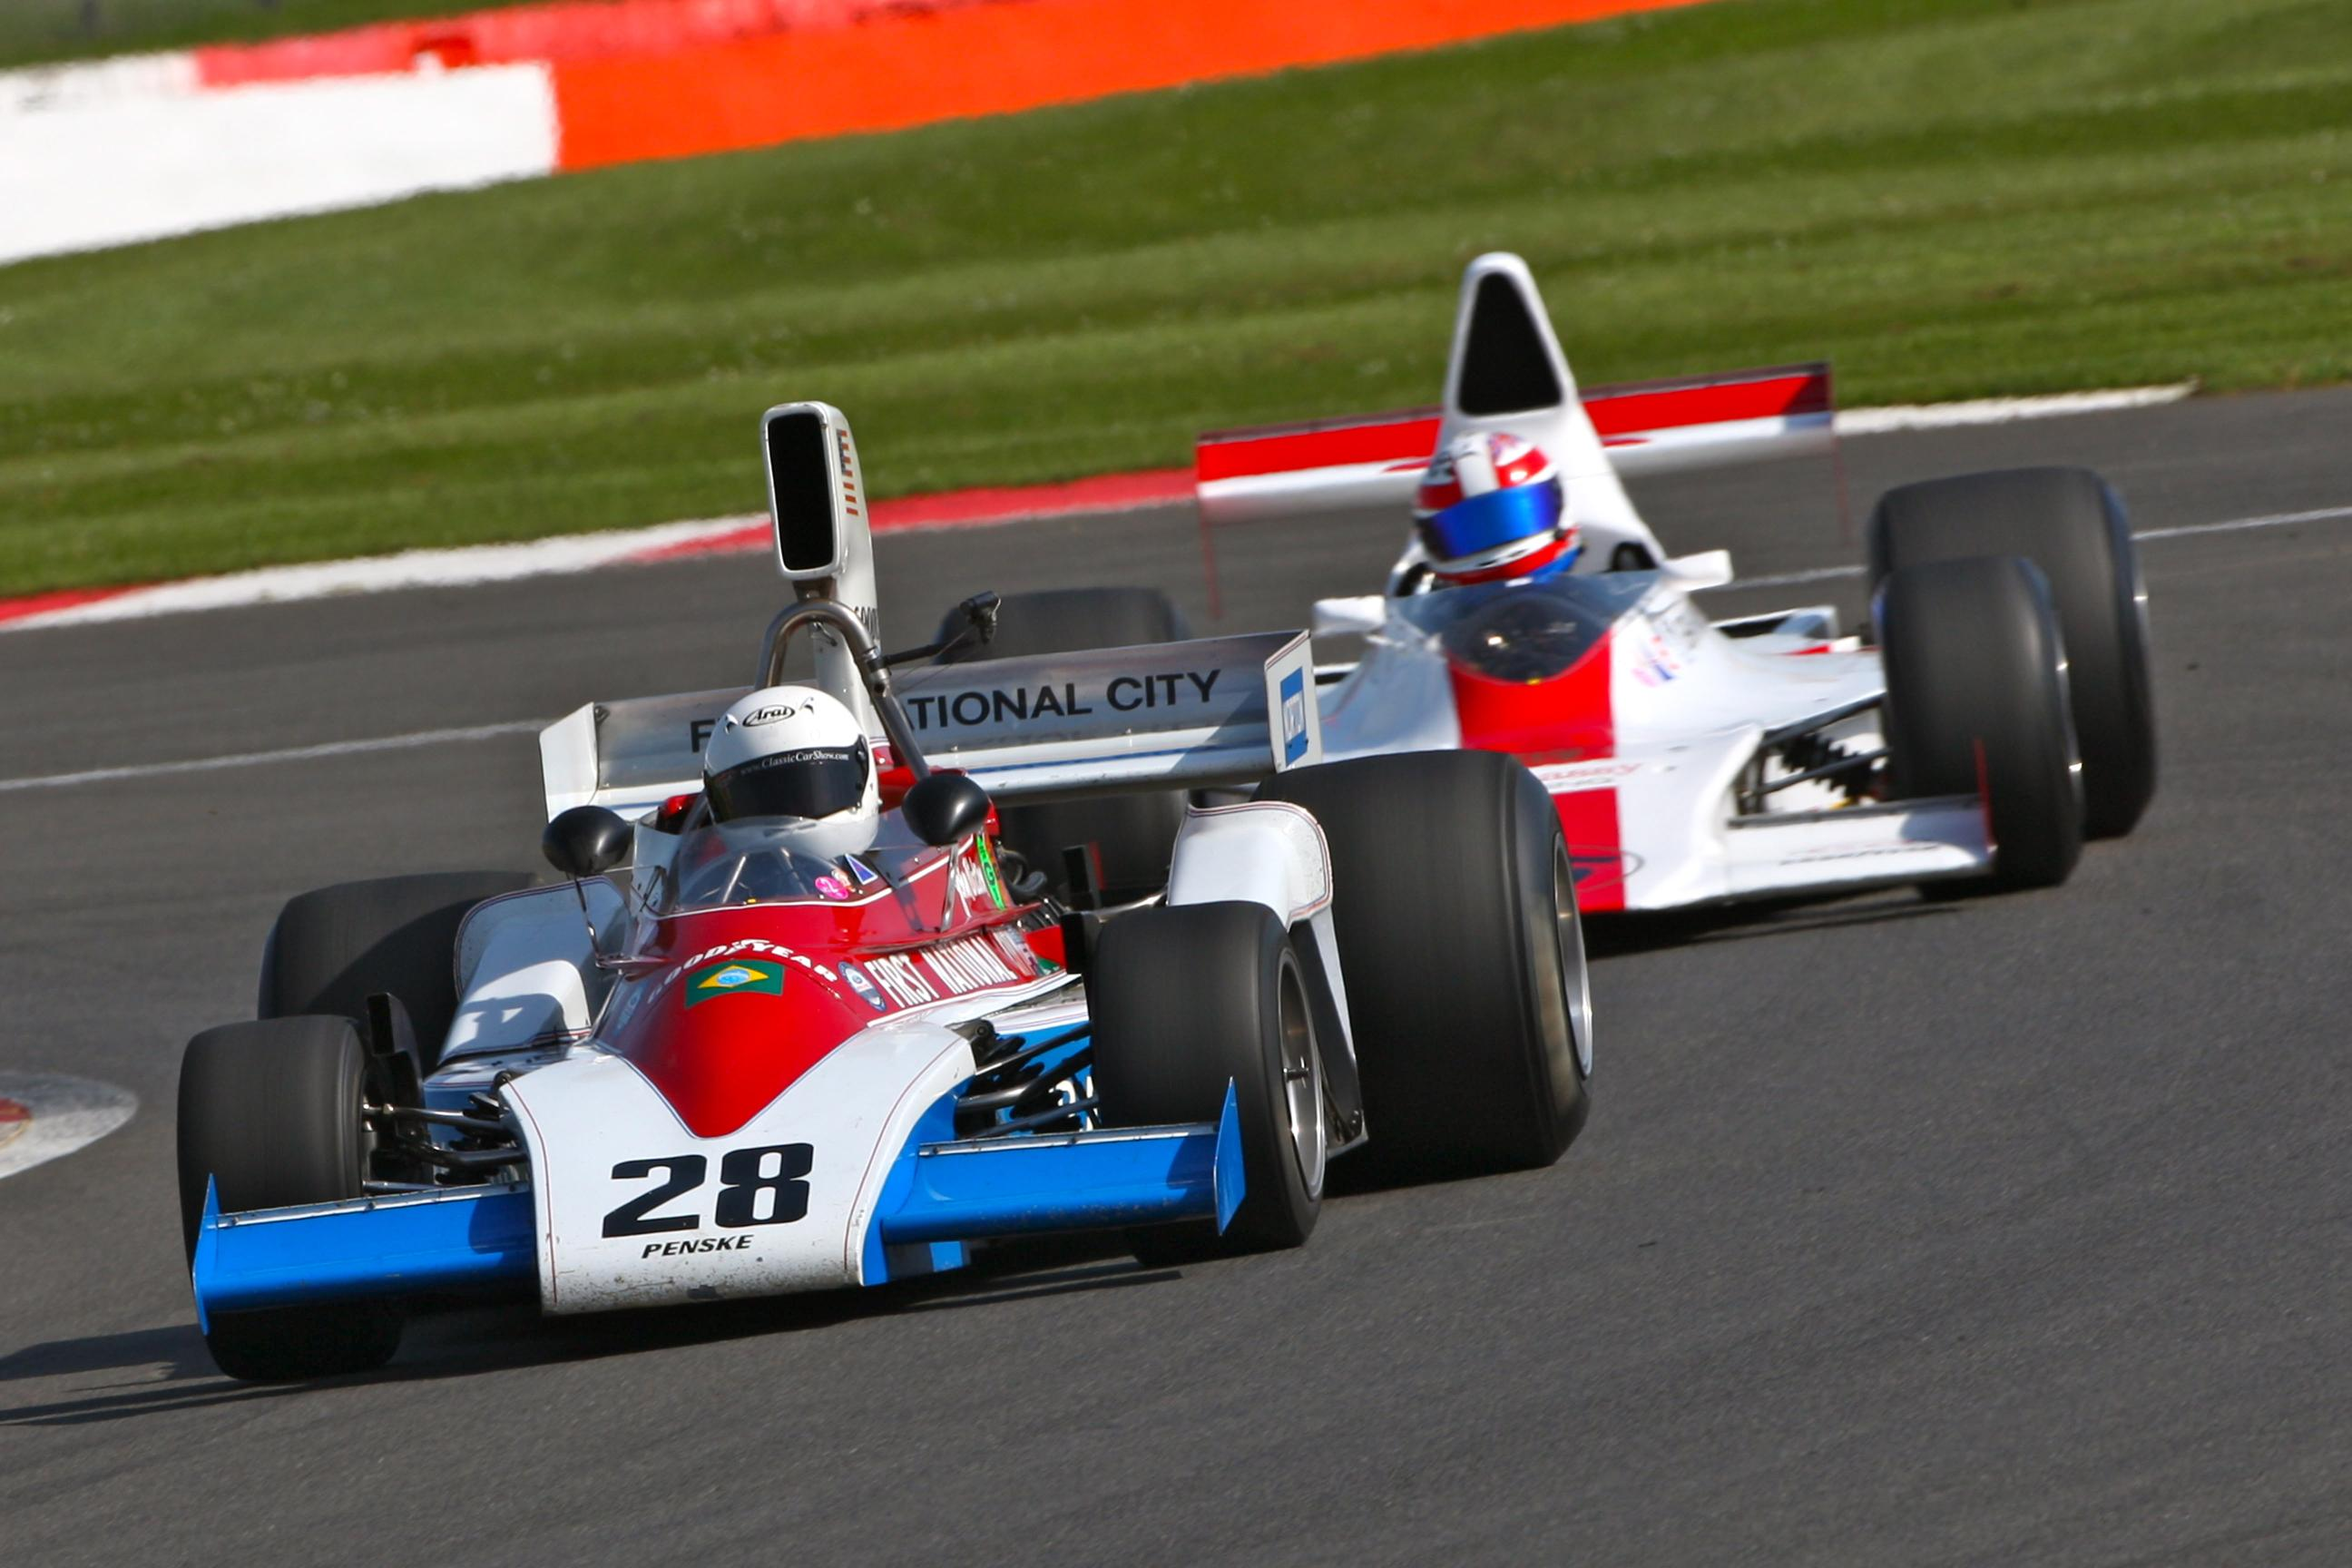 Silverstone Classic Preview - Auto Addicts